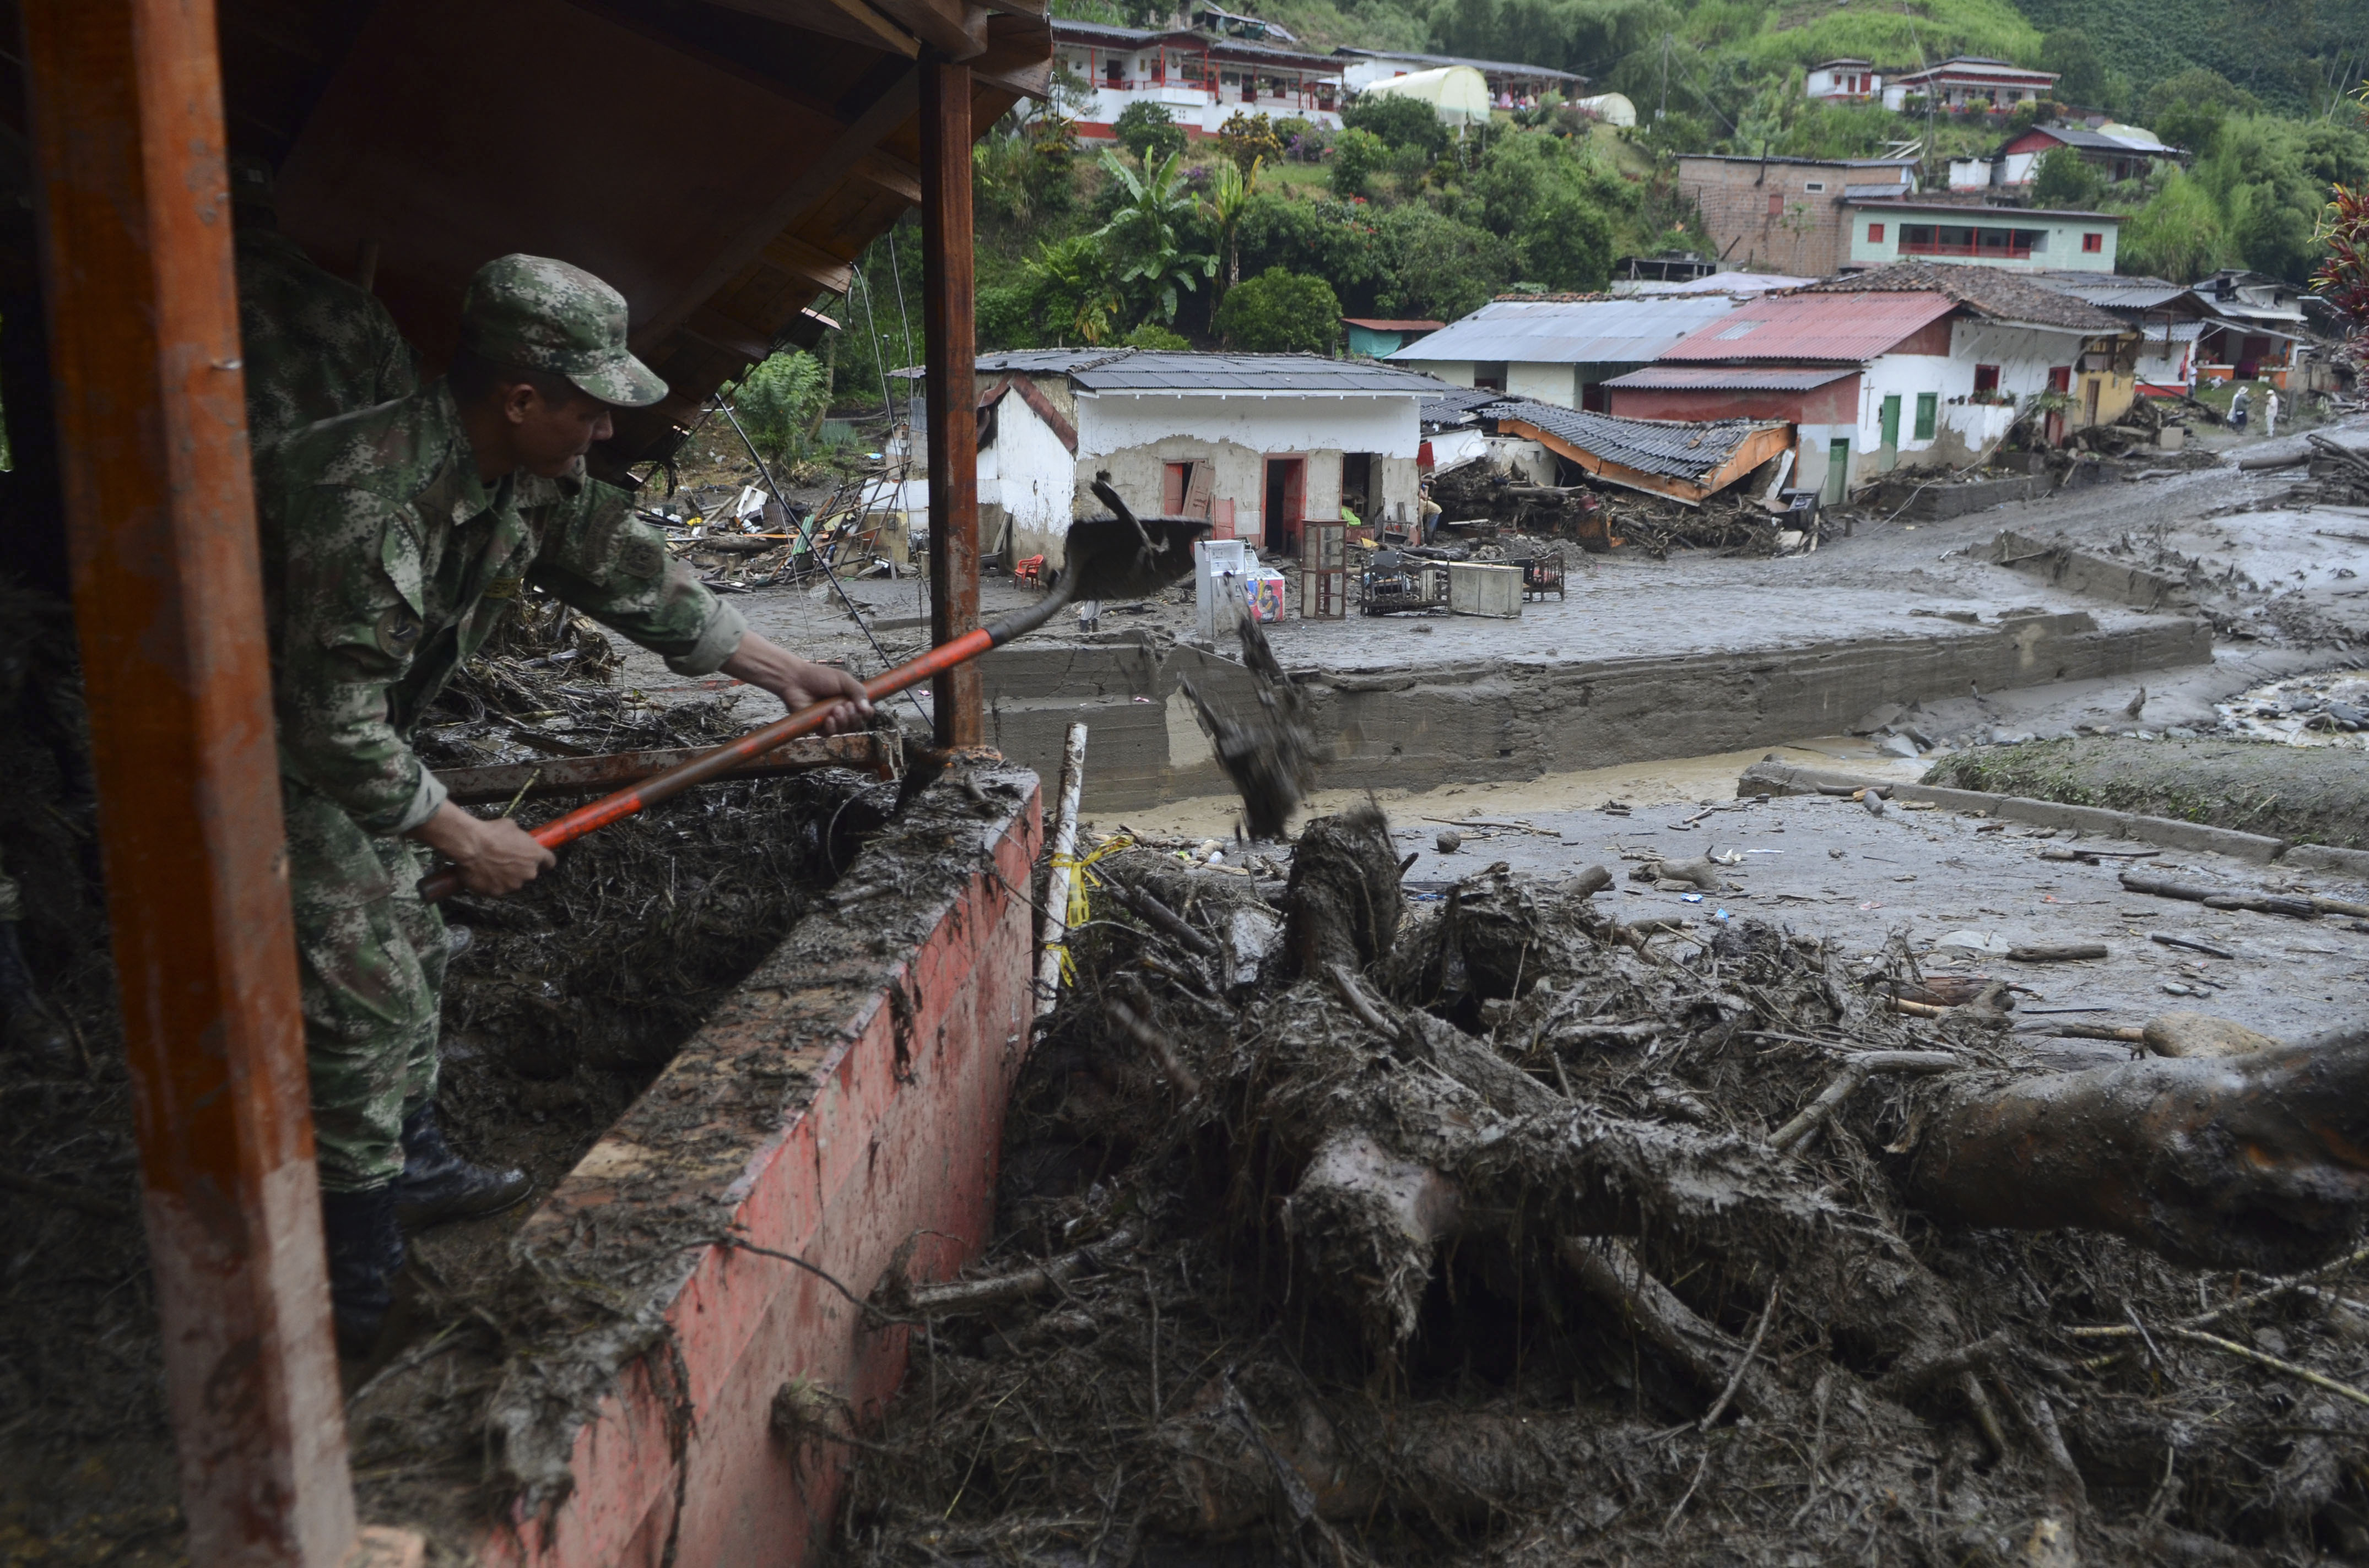 A soldier shovels mud from a house damaged by a mudslide in Salgar, in Colombia's northwestern state of Antioquia, May 19, 2015.